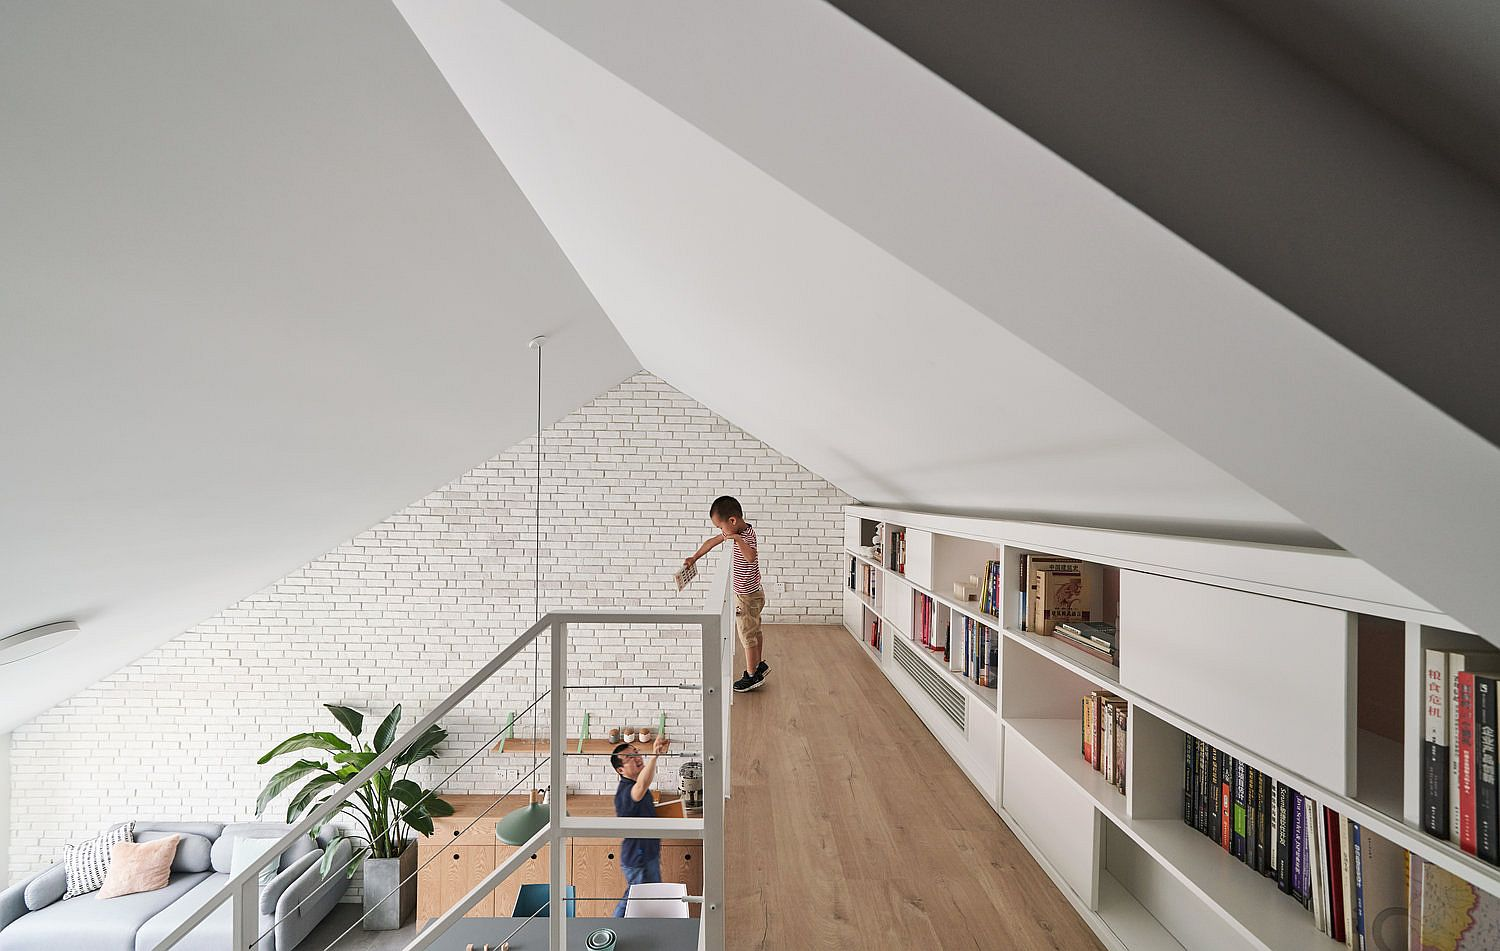 Mezzanine-level-bookshelf-makes-use-of-space-with-ease